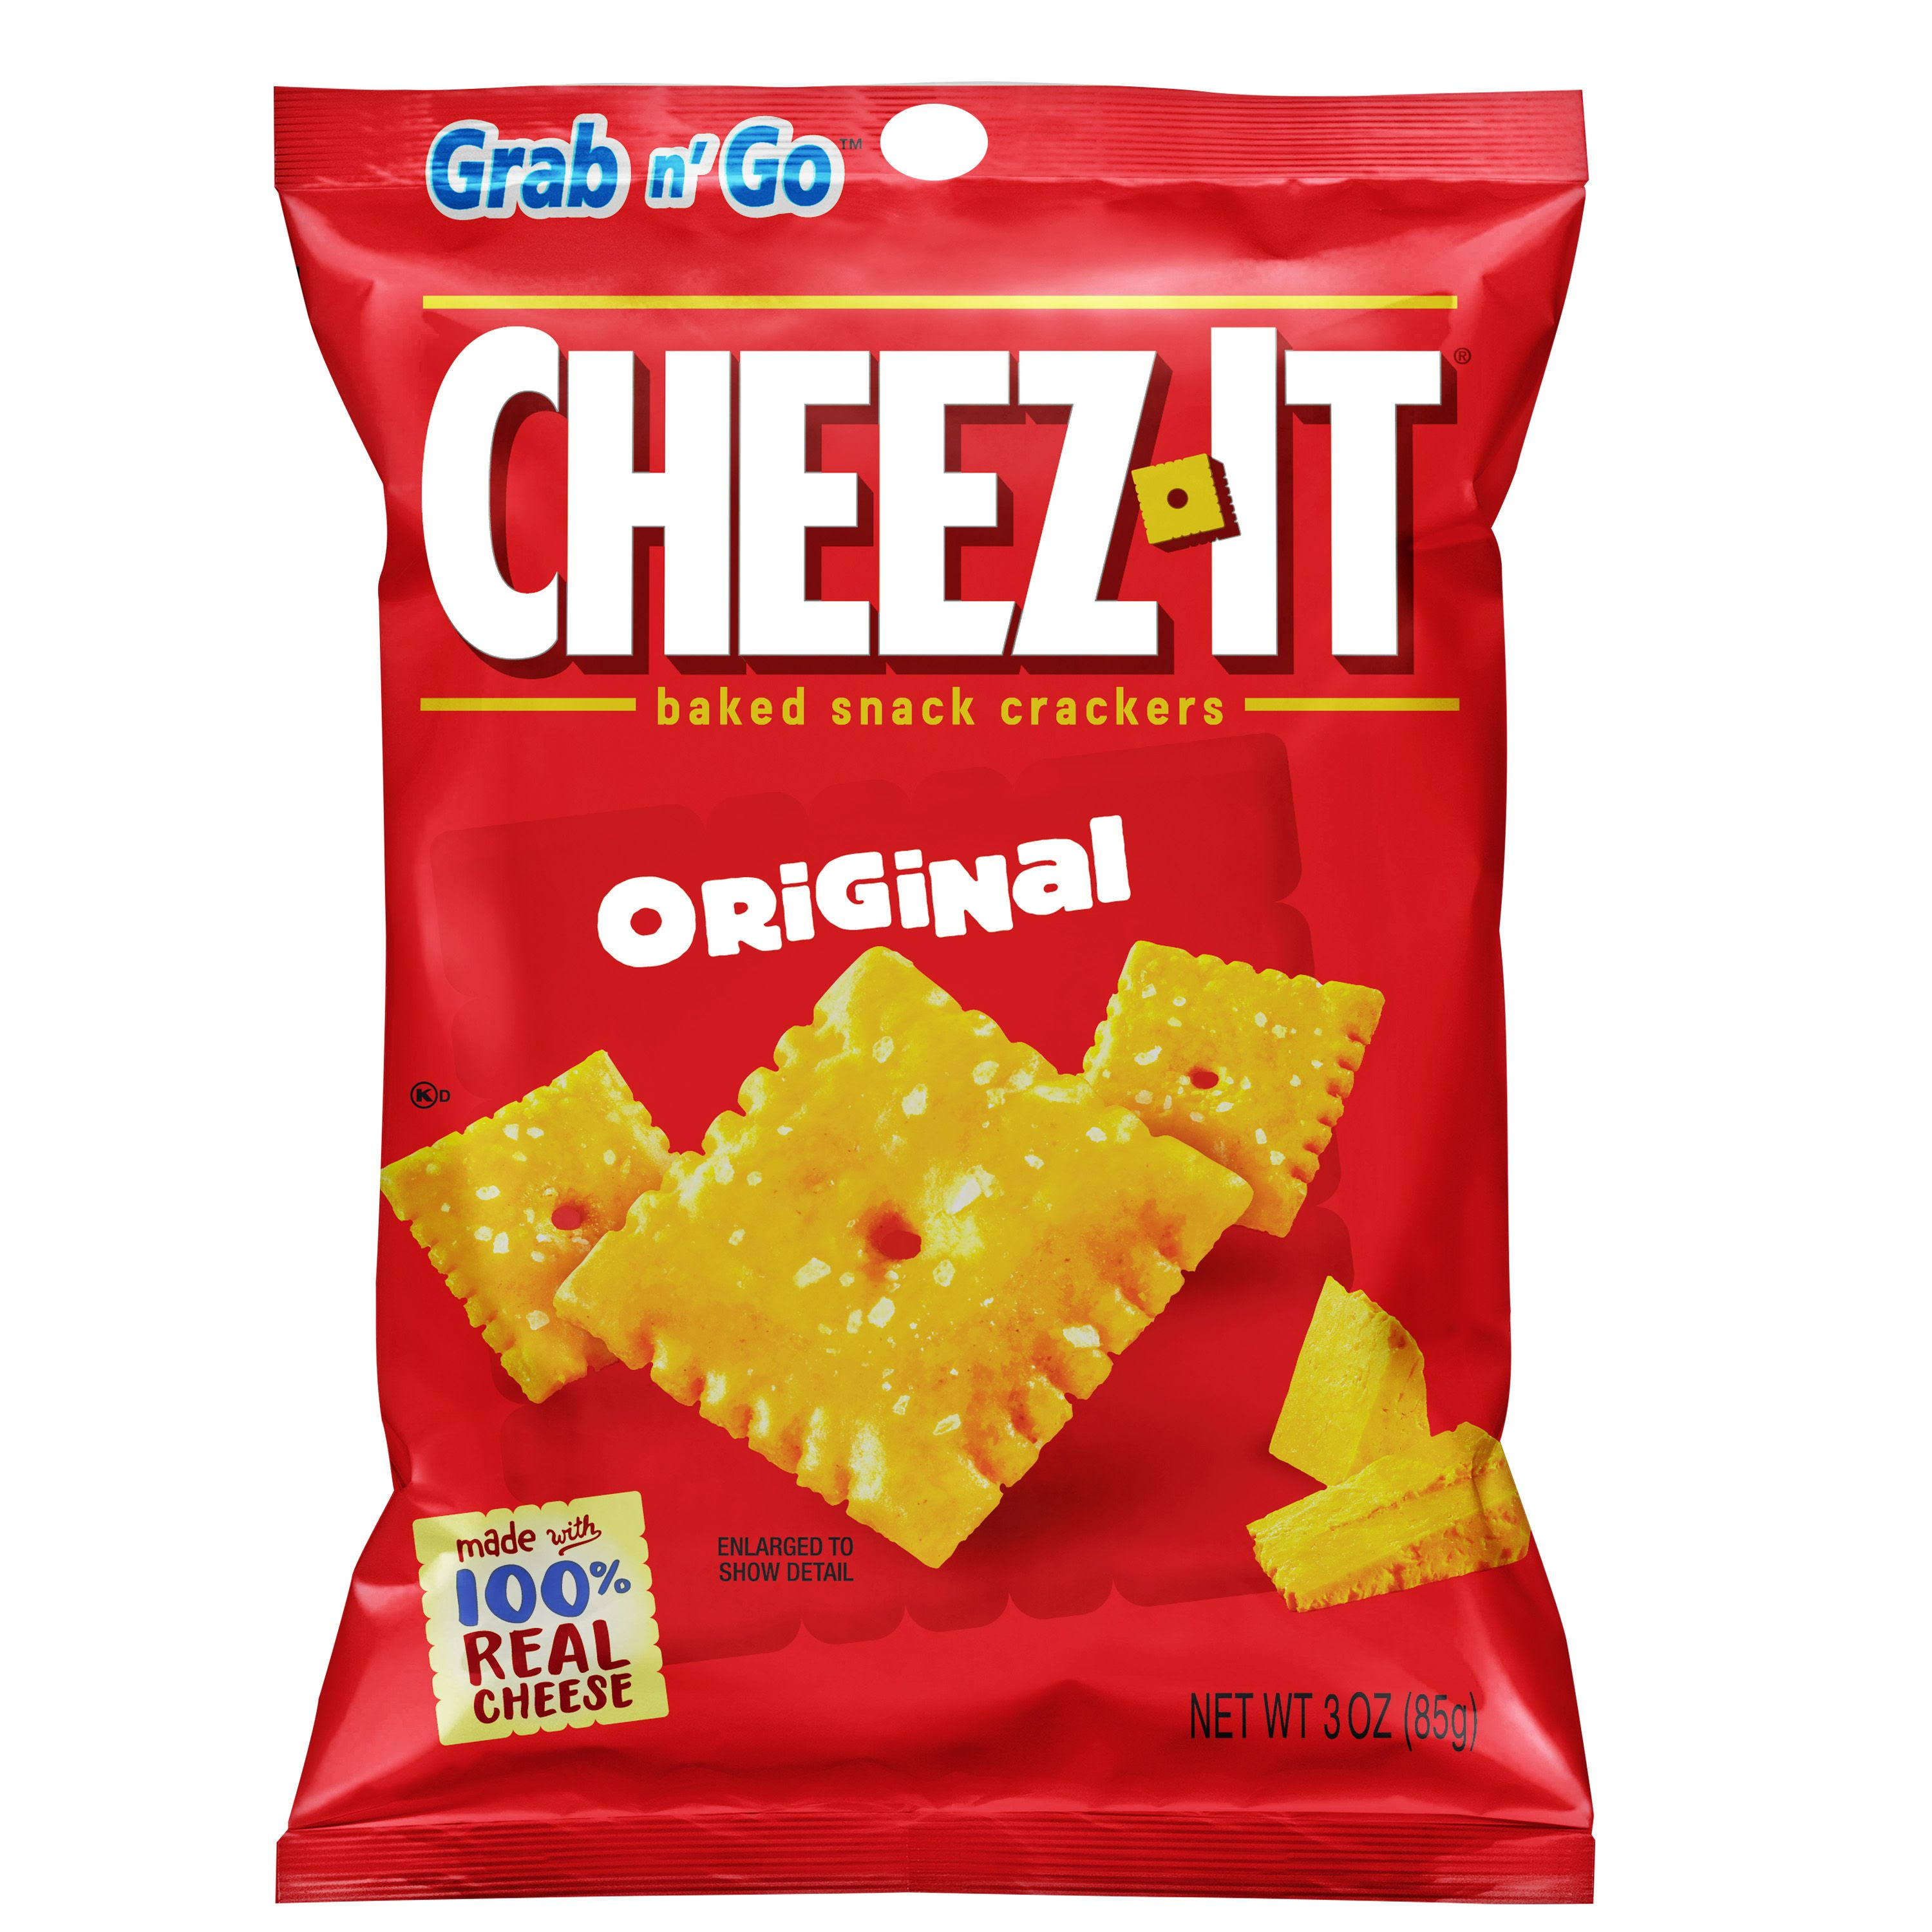 Sunshine Cheez-It Grab N' Go Baked Snack Crackers - Cheese, 3oz